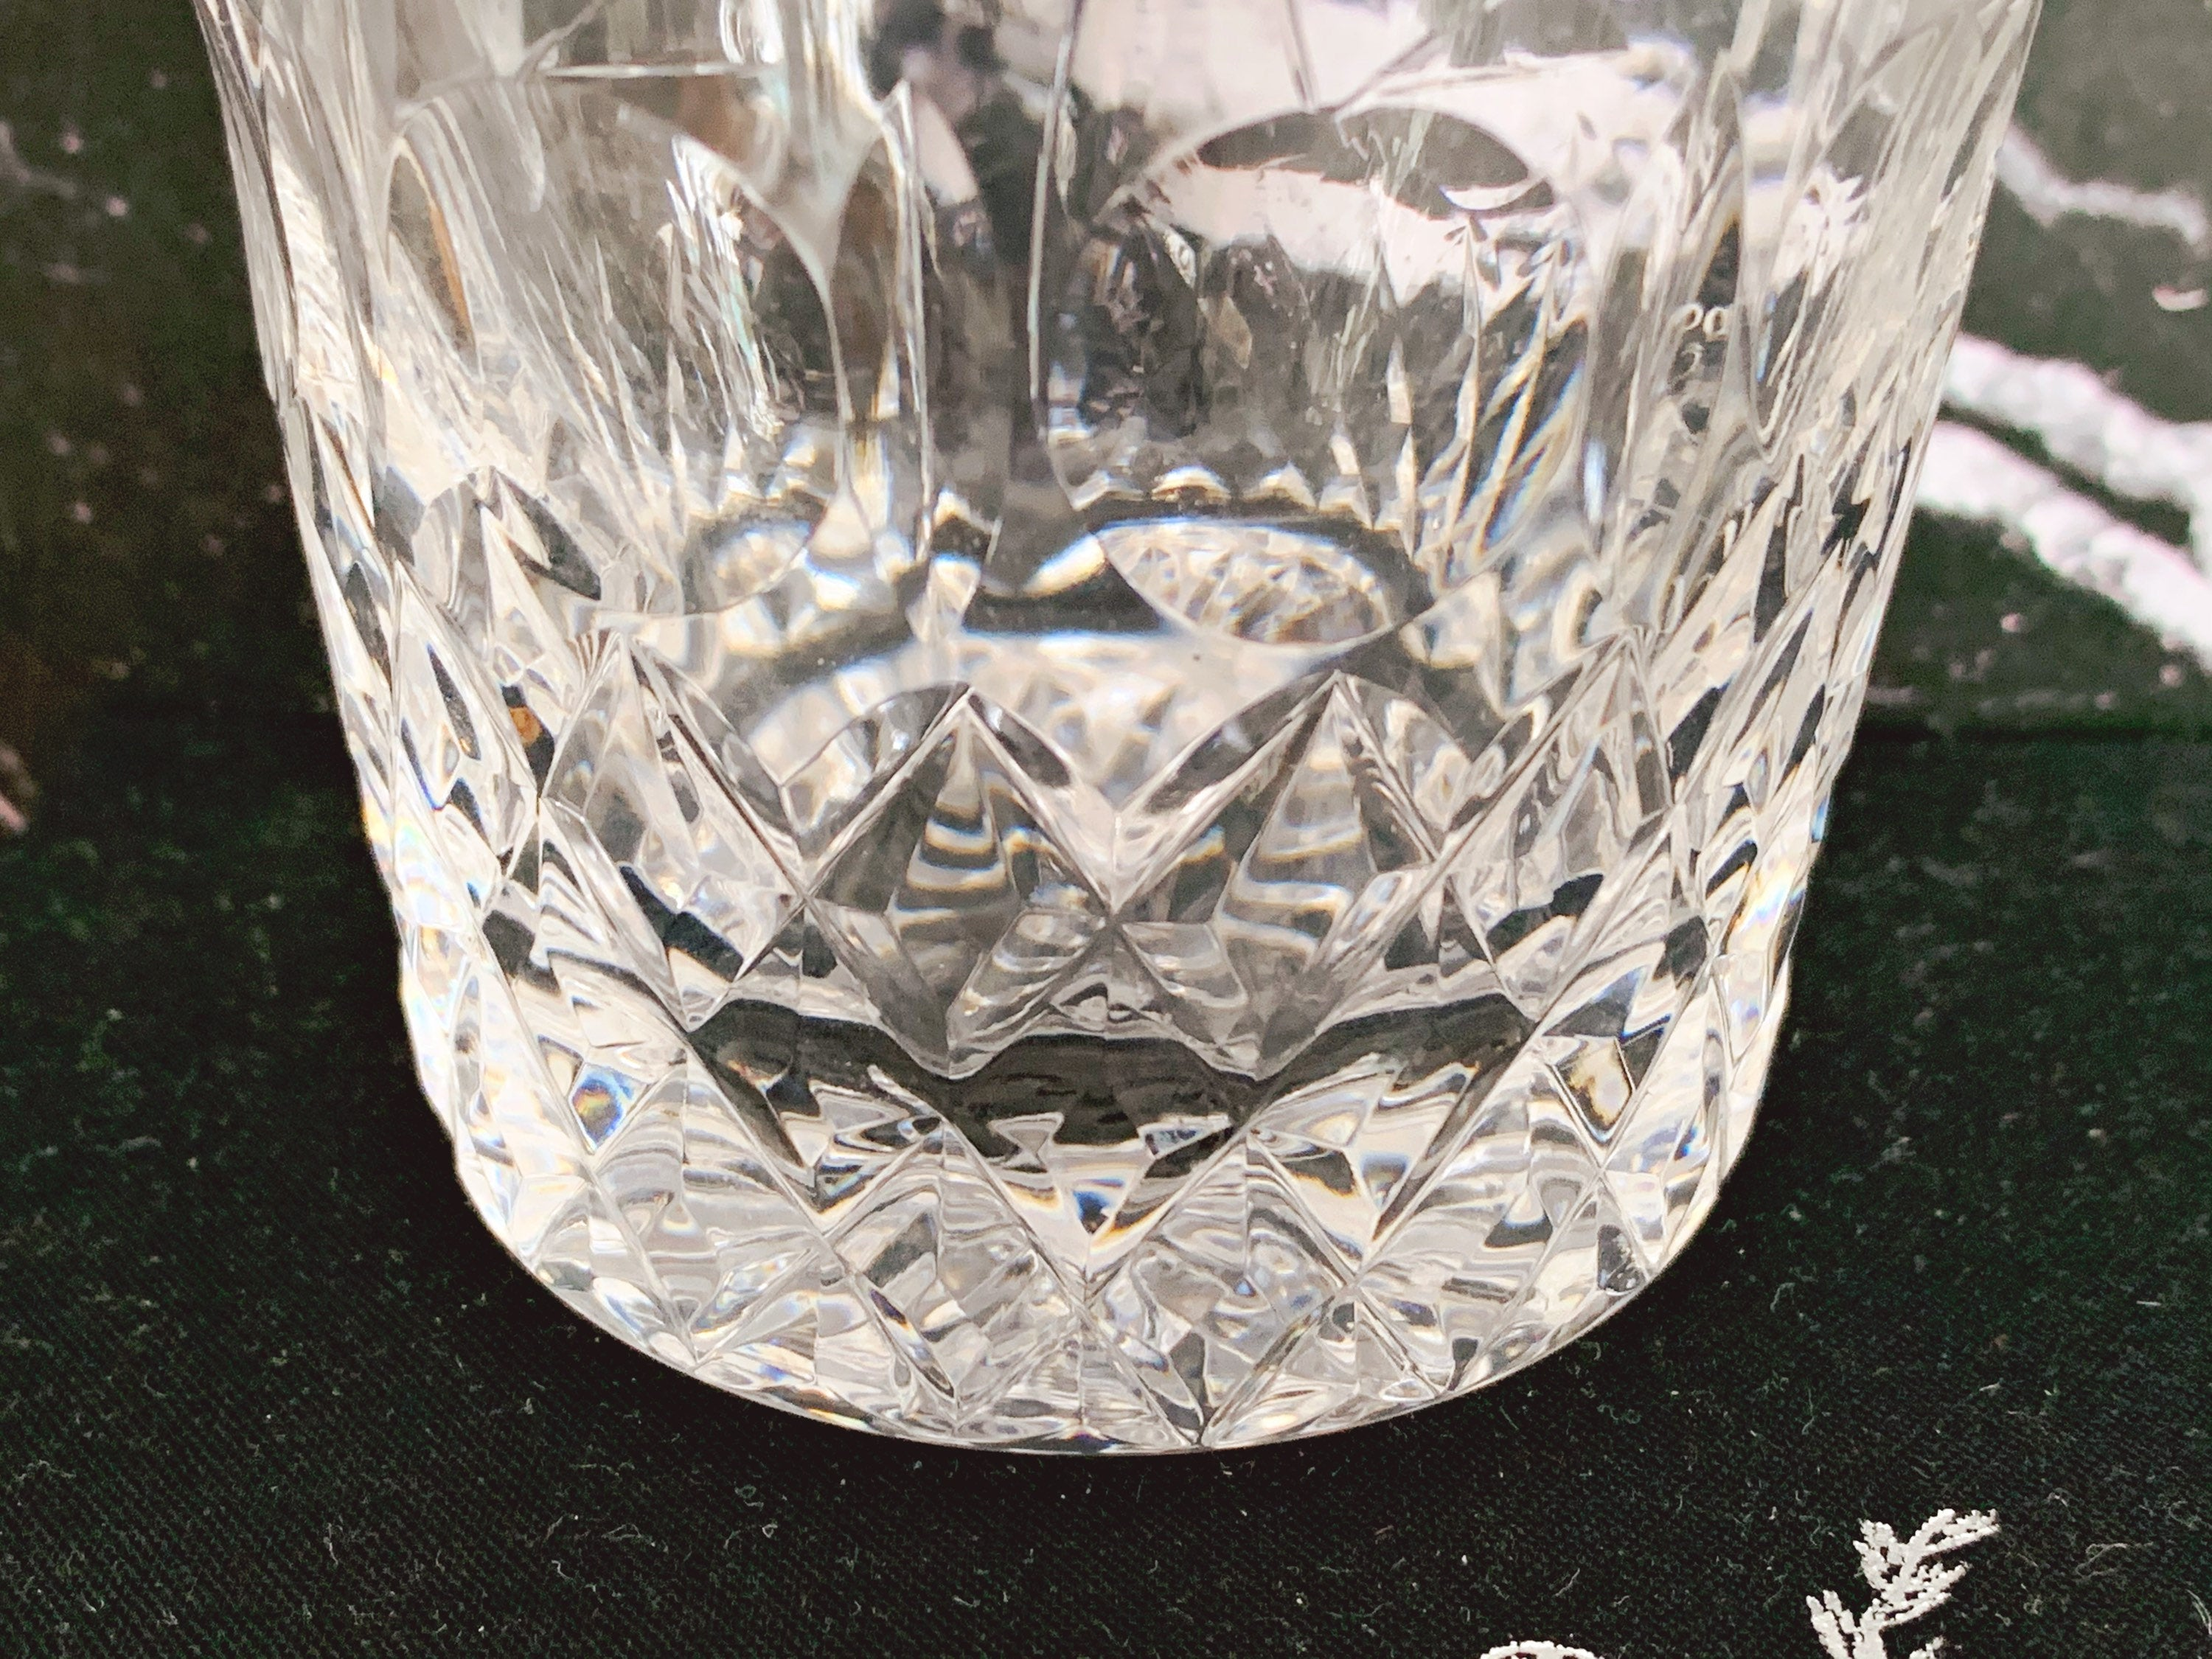 Vintage Rogaska Crystal Double Old Fashioned Glasses in Gallia Pattern | Etched Whisky Rocks Glasses Barware | Set of 2, 4 or 6